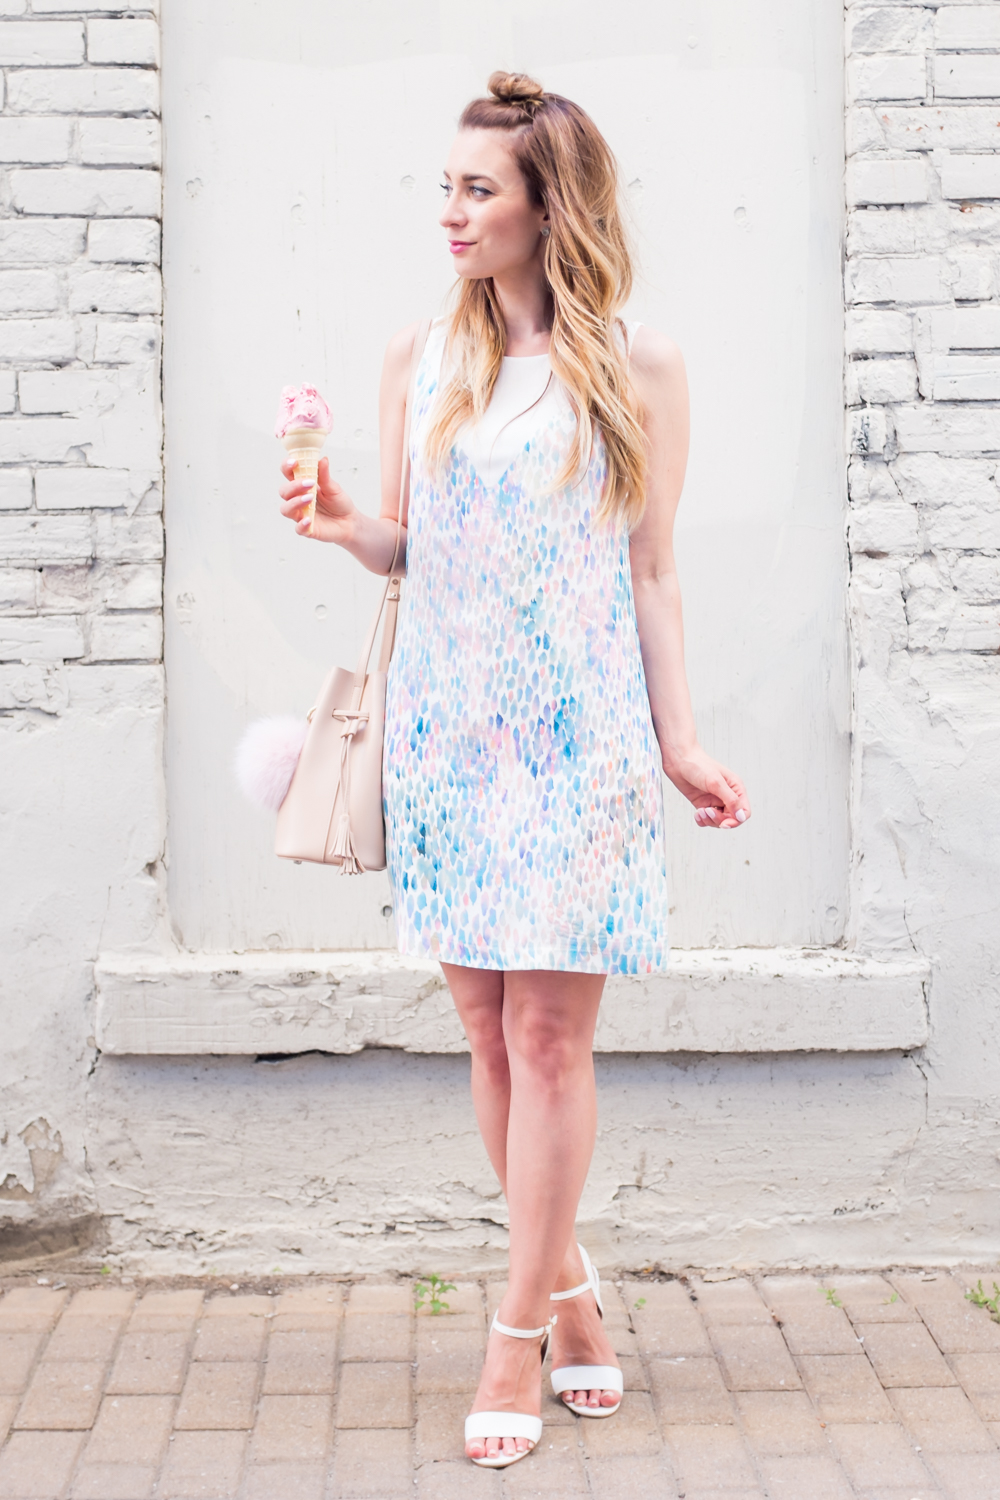 Street style tip of the day: Pretty pastels